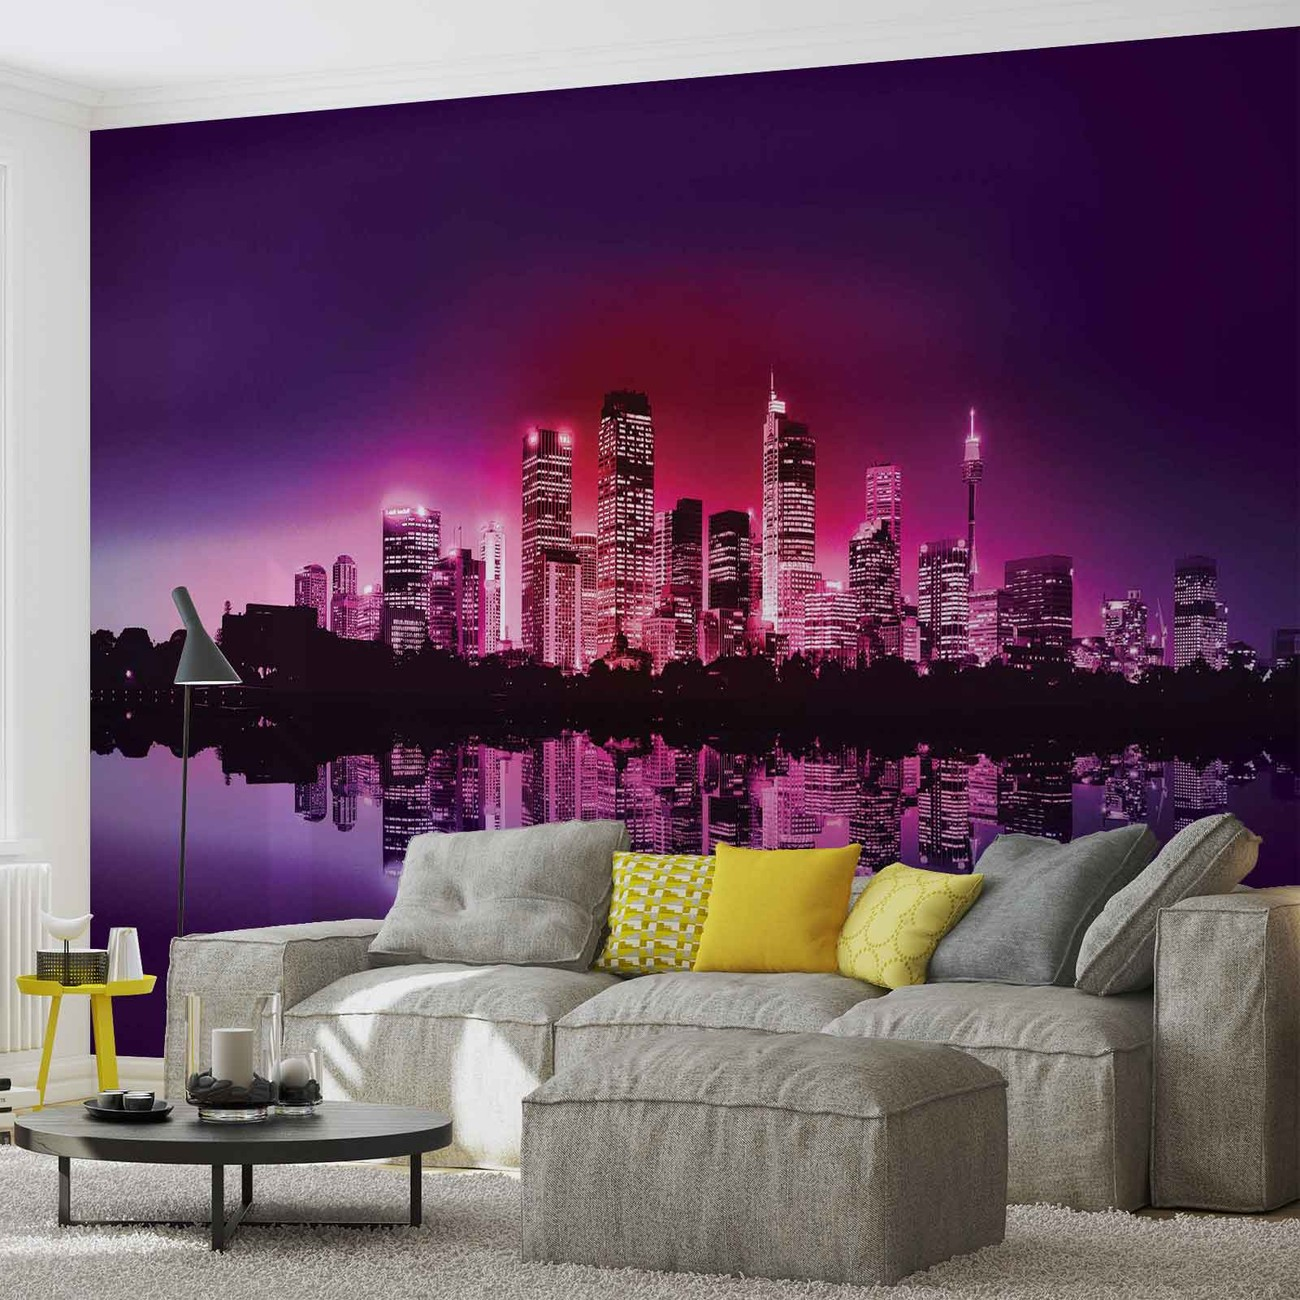 fototapete tapete stadt new york skyline bei europosters kostenloser versand. Black Bedroom Furniture Sets. Home Design Ideas